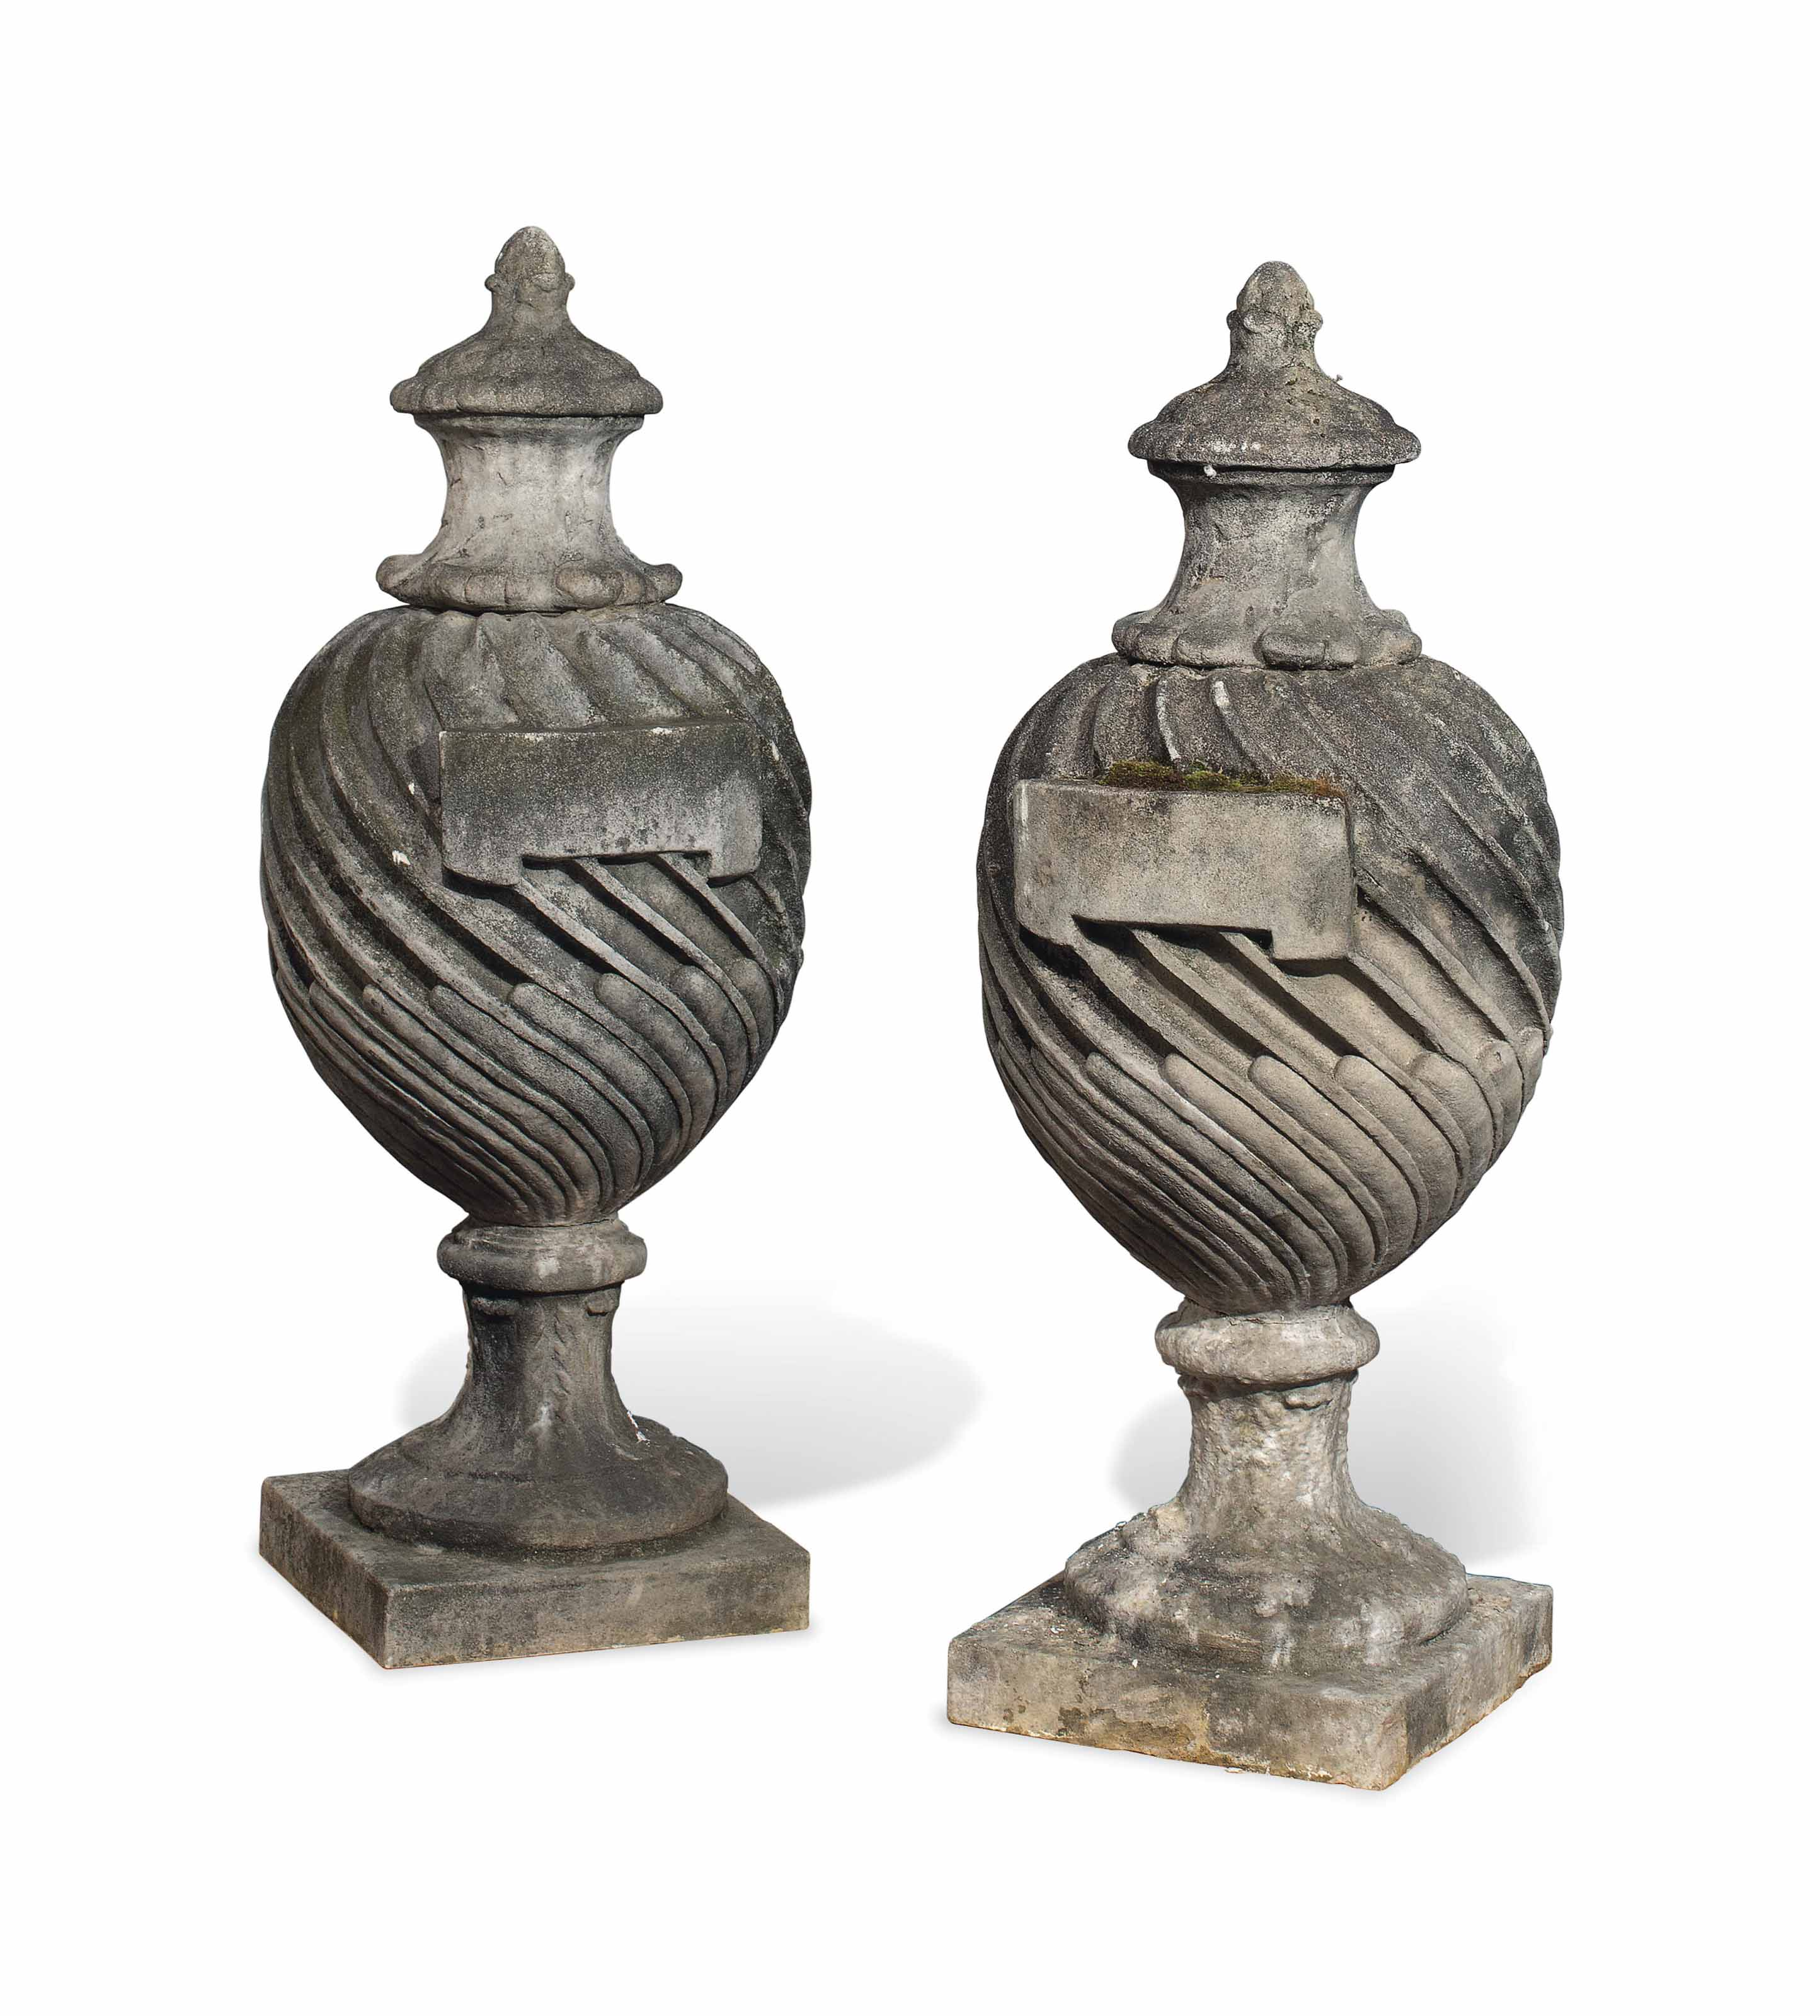 A PAIR OF COMPOSITION STONE UR